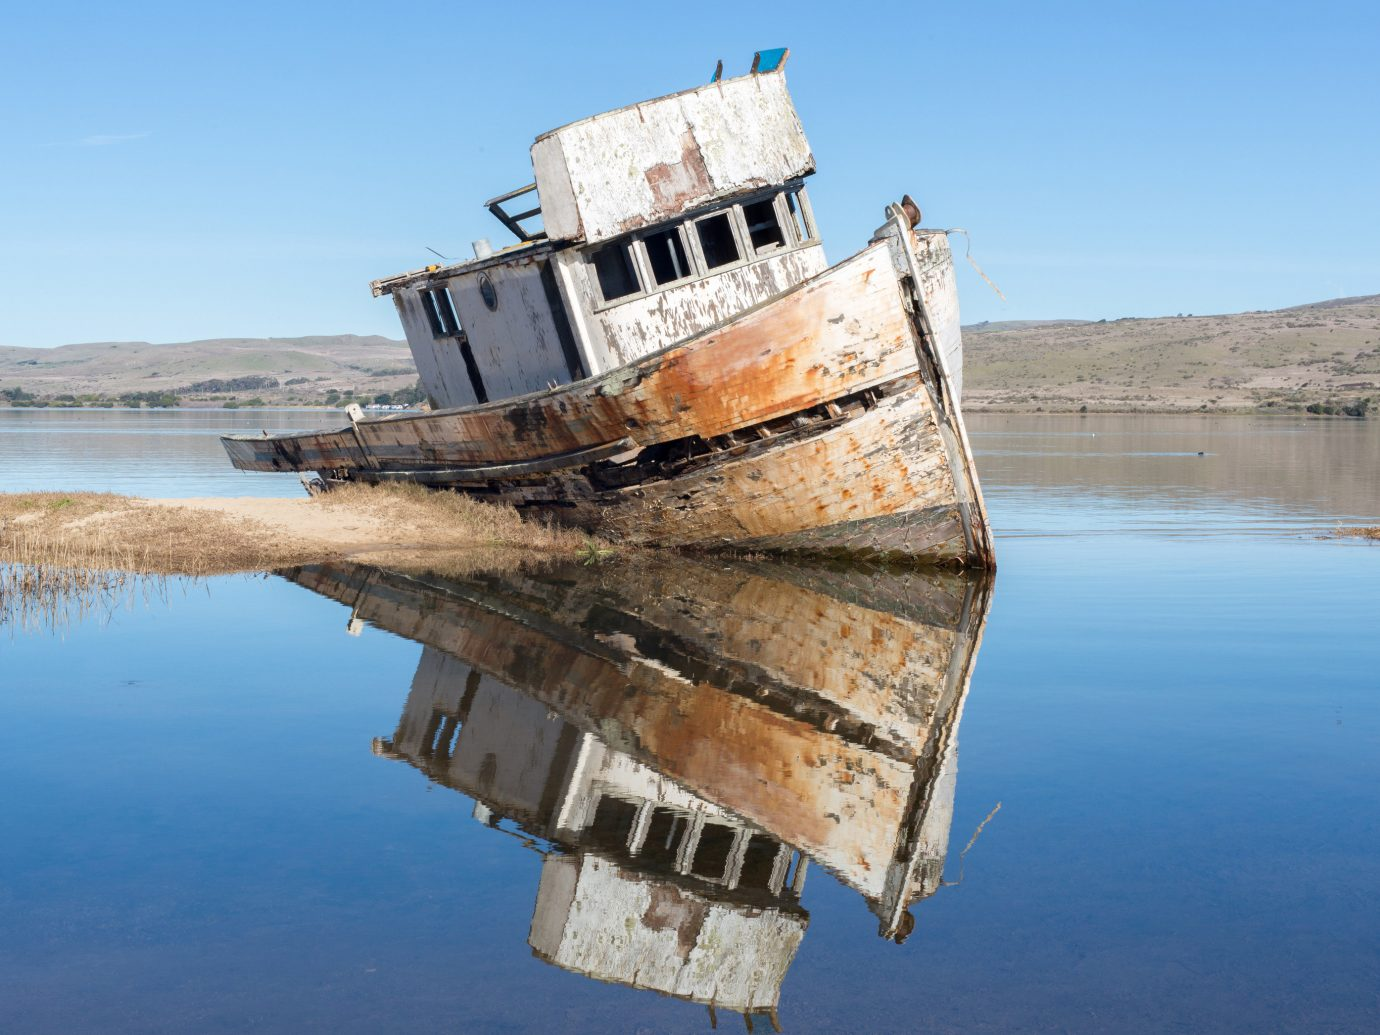 Trip Ideas water sky outdoor vehicle Boat ship watercraft Sea reflection shipwreck transport channel Coast Lake waterway terrain old shore